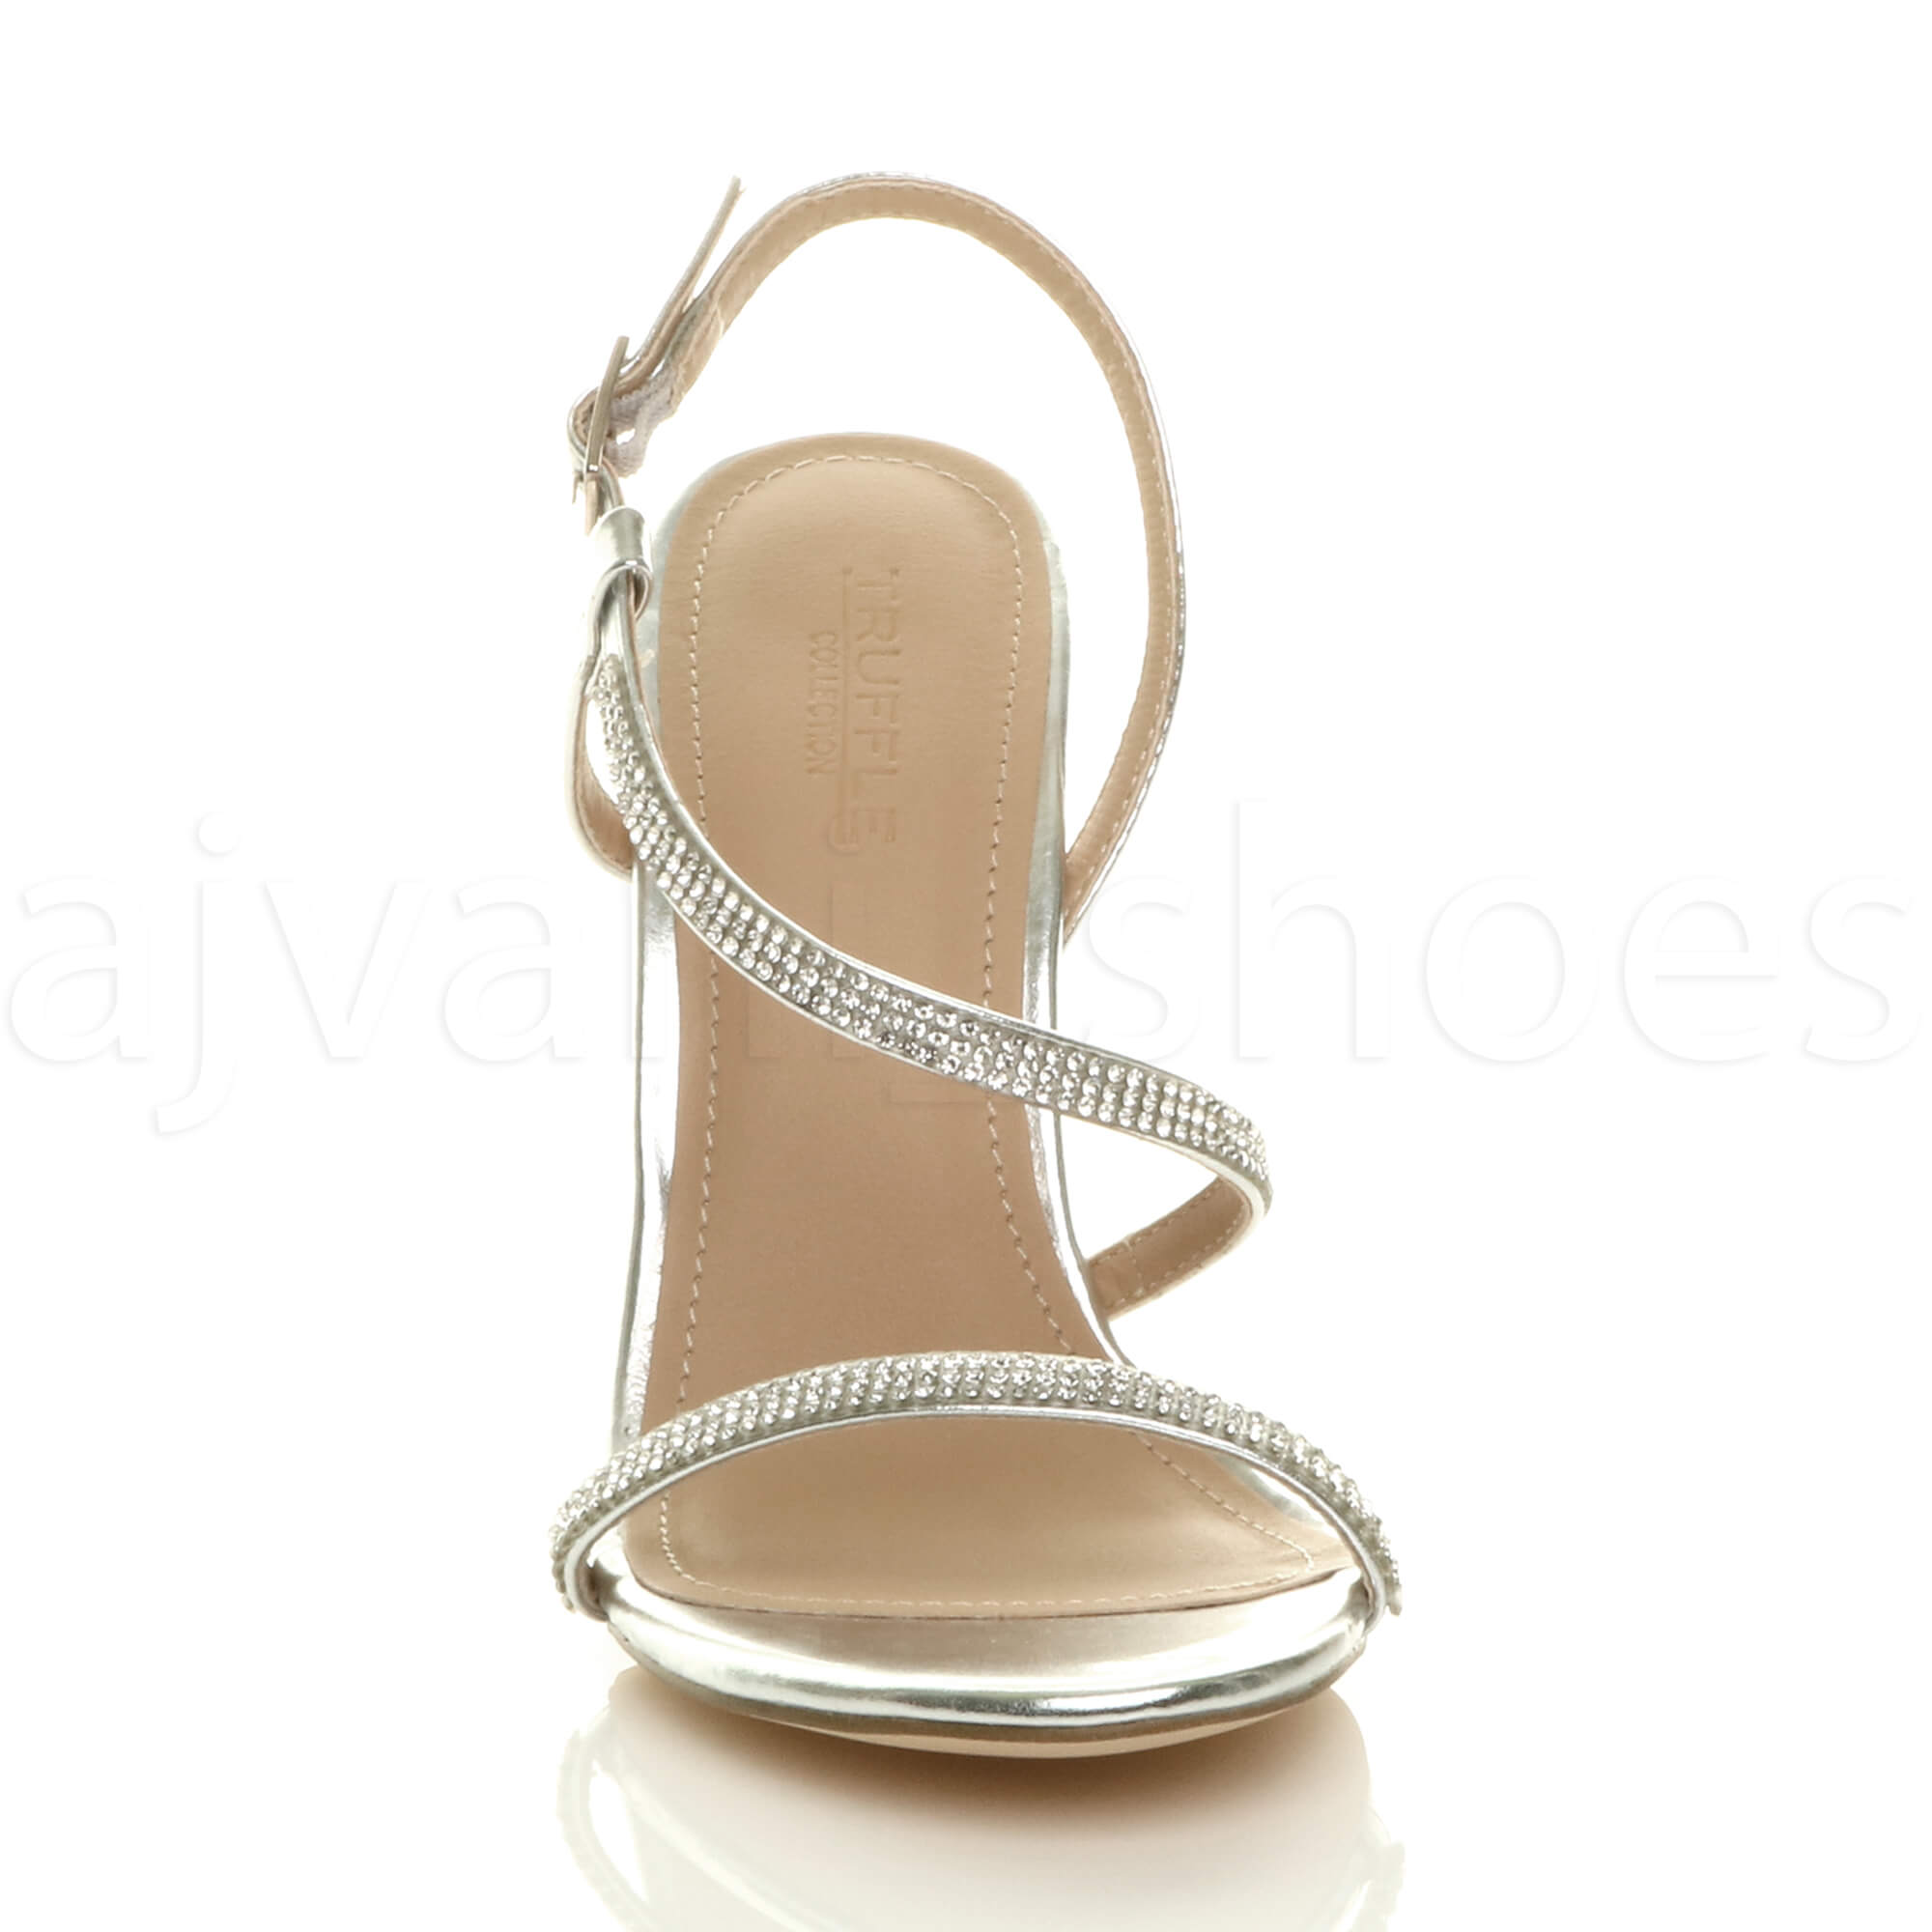 WOMENS-LADIES-HIGH-HEEL-DIAMANTE-BARELY-THERE-STRAPPY-EVENING-SANDALS-SIZE thumbnail 23